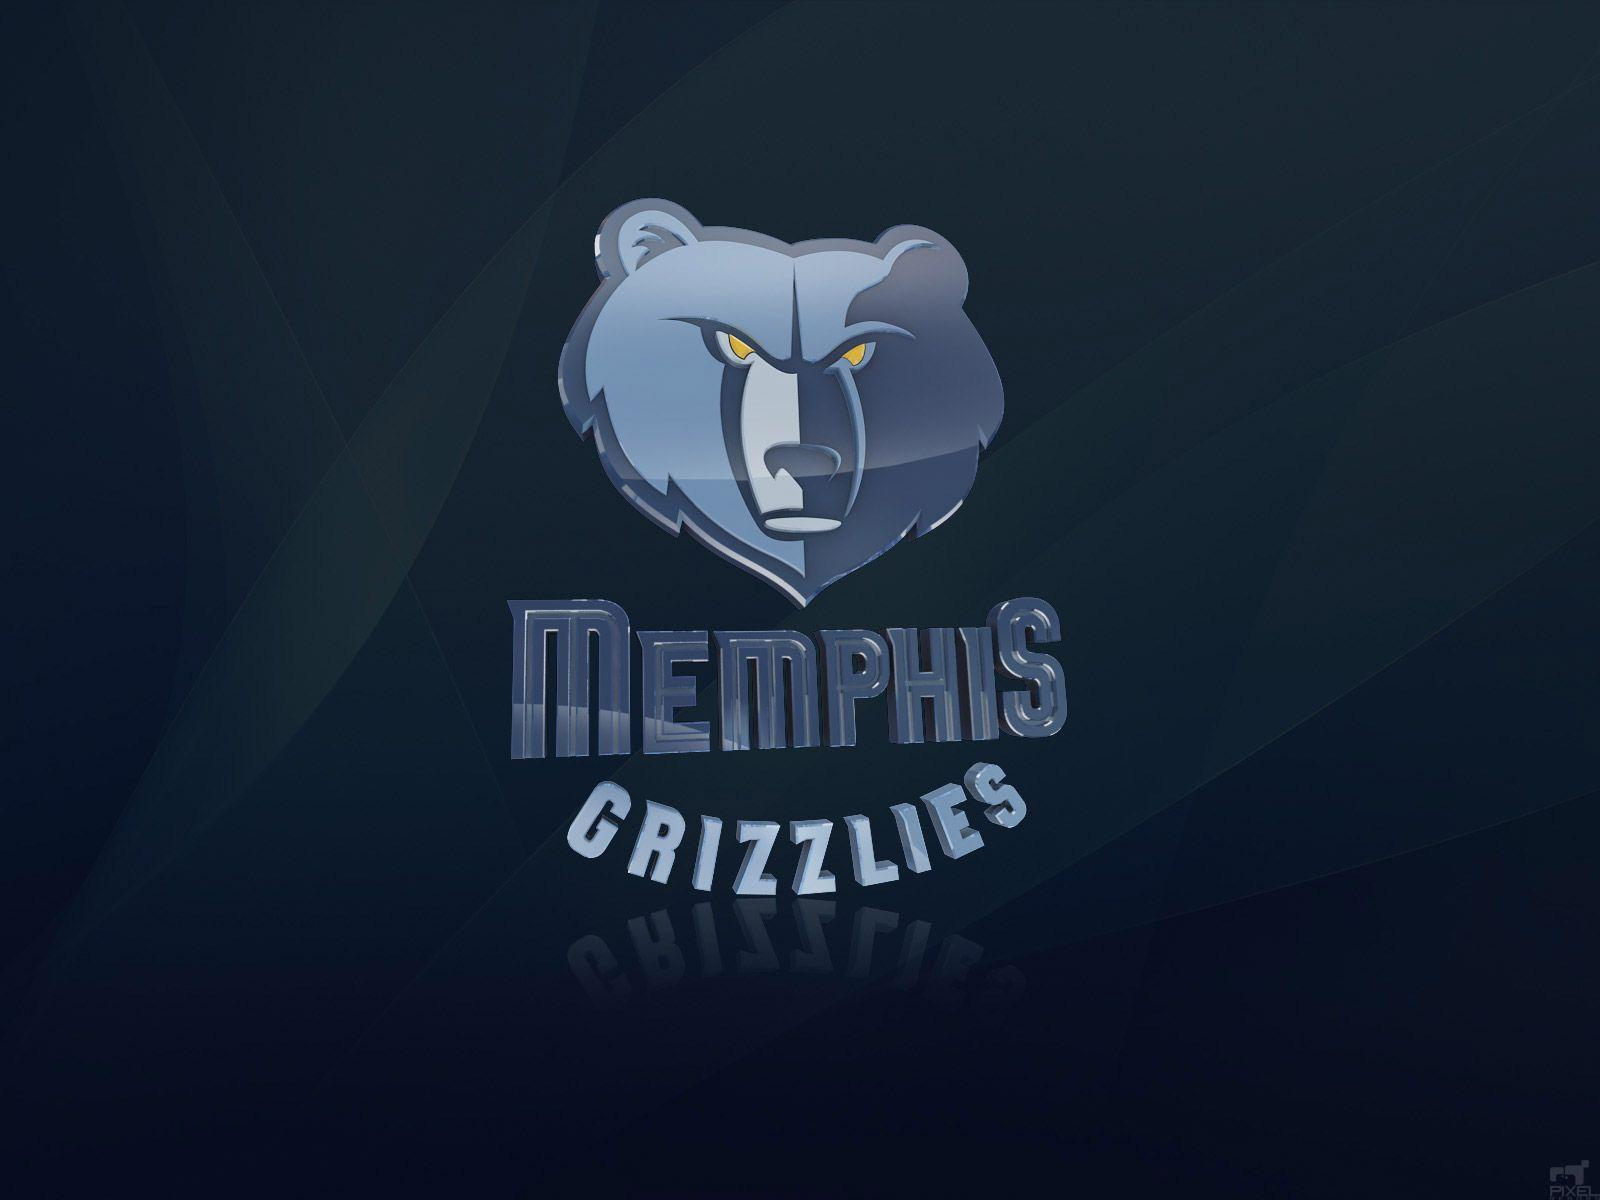 Memphis Grizzlies 3D Logo Wallpaper | Basketball Wallpapers at ...